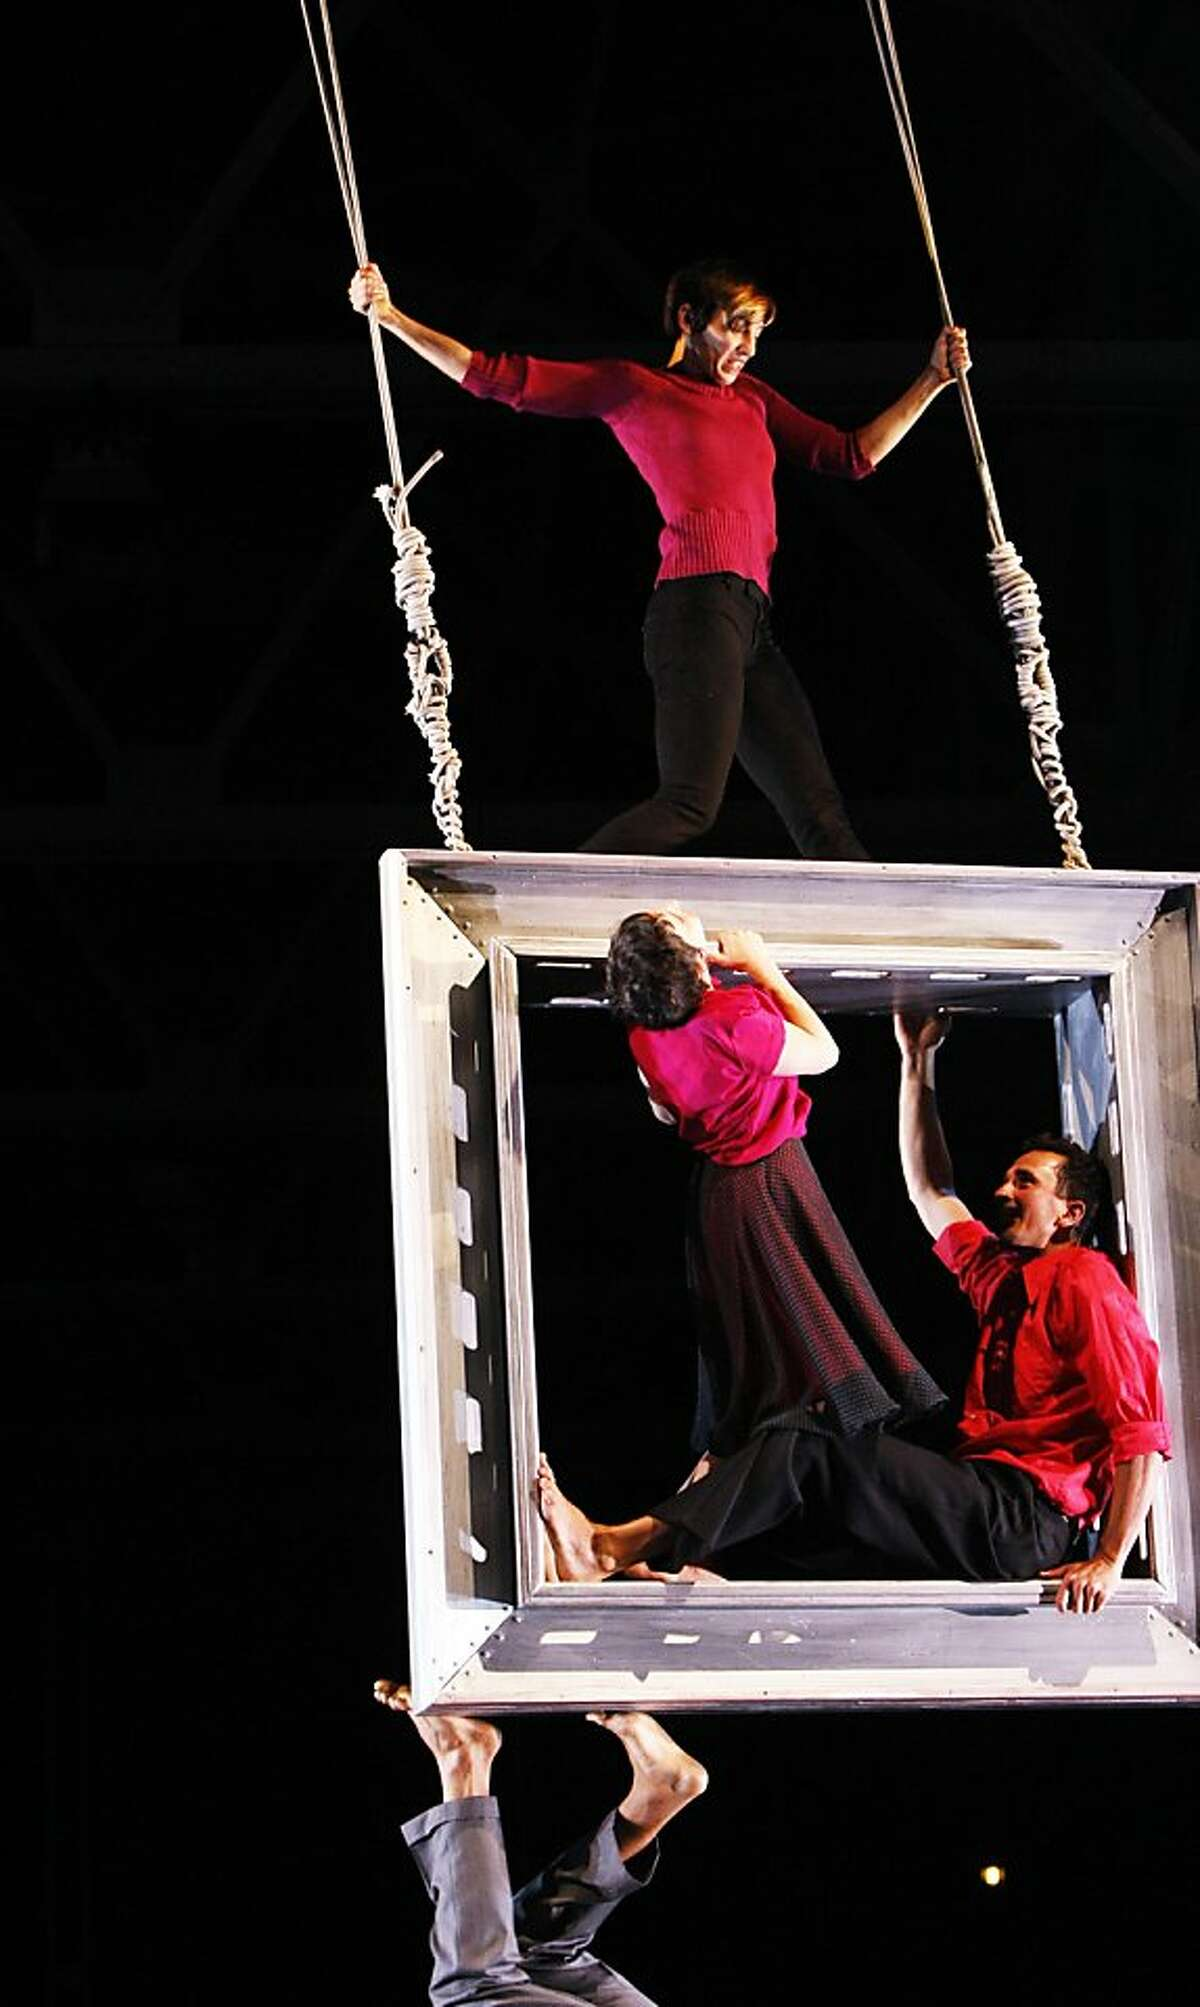 """The dress rehearsal of Bay Area vertical dance company's World Premiere of """"Harboring"""" at the Festival Pavilion on Wednesday, July 17, 2013 in San Francisco, Calif."""